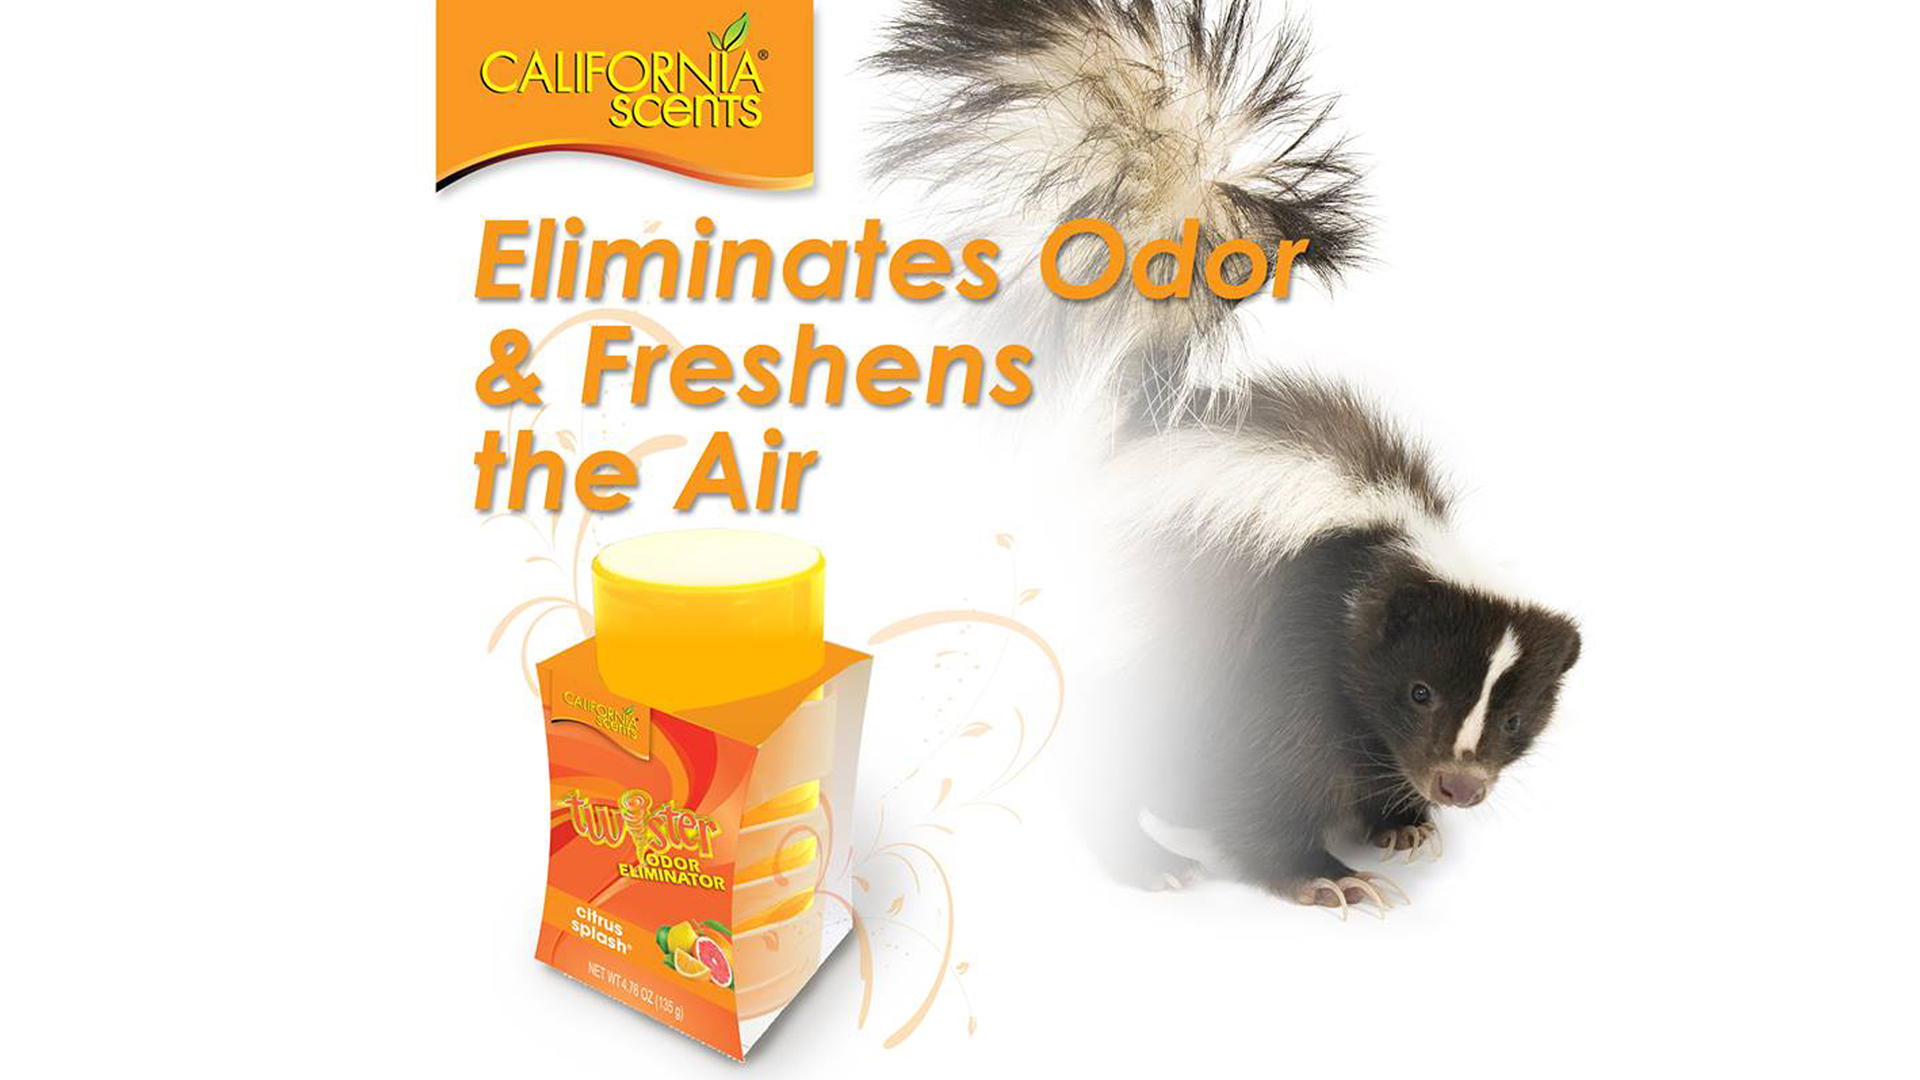 California Scents, consumer air freshener content